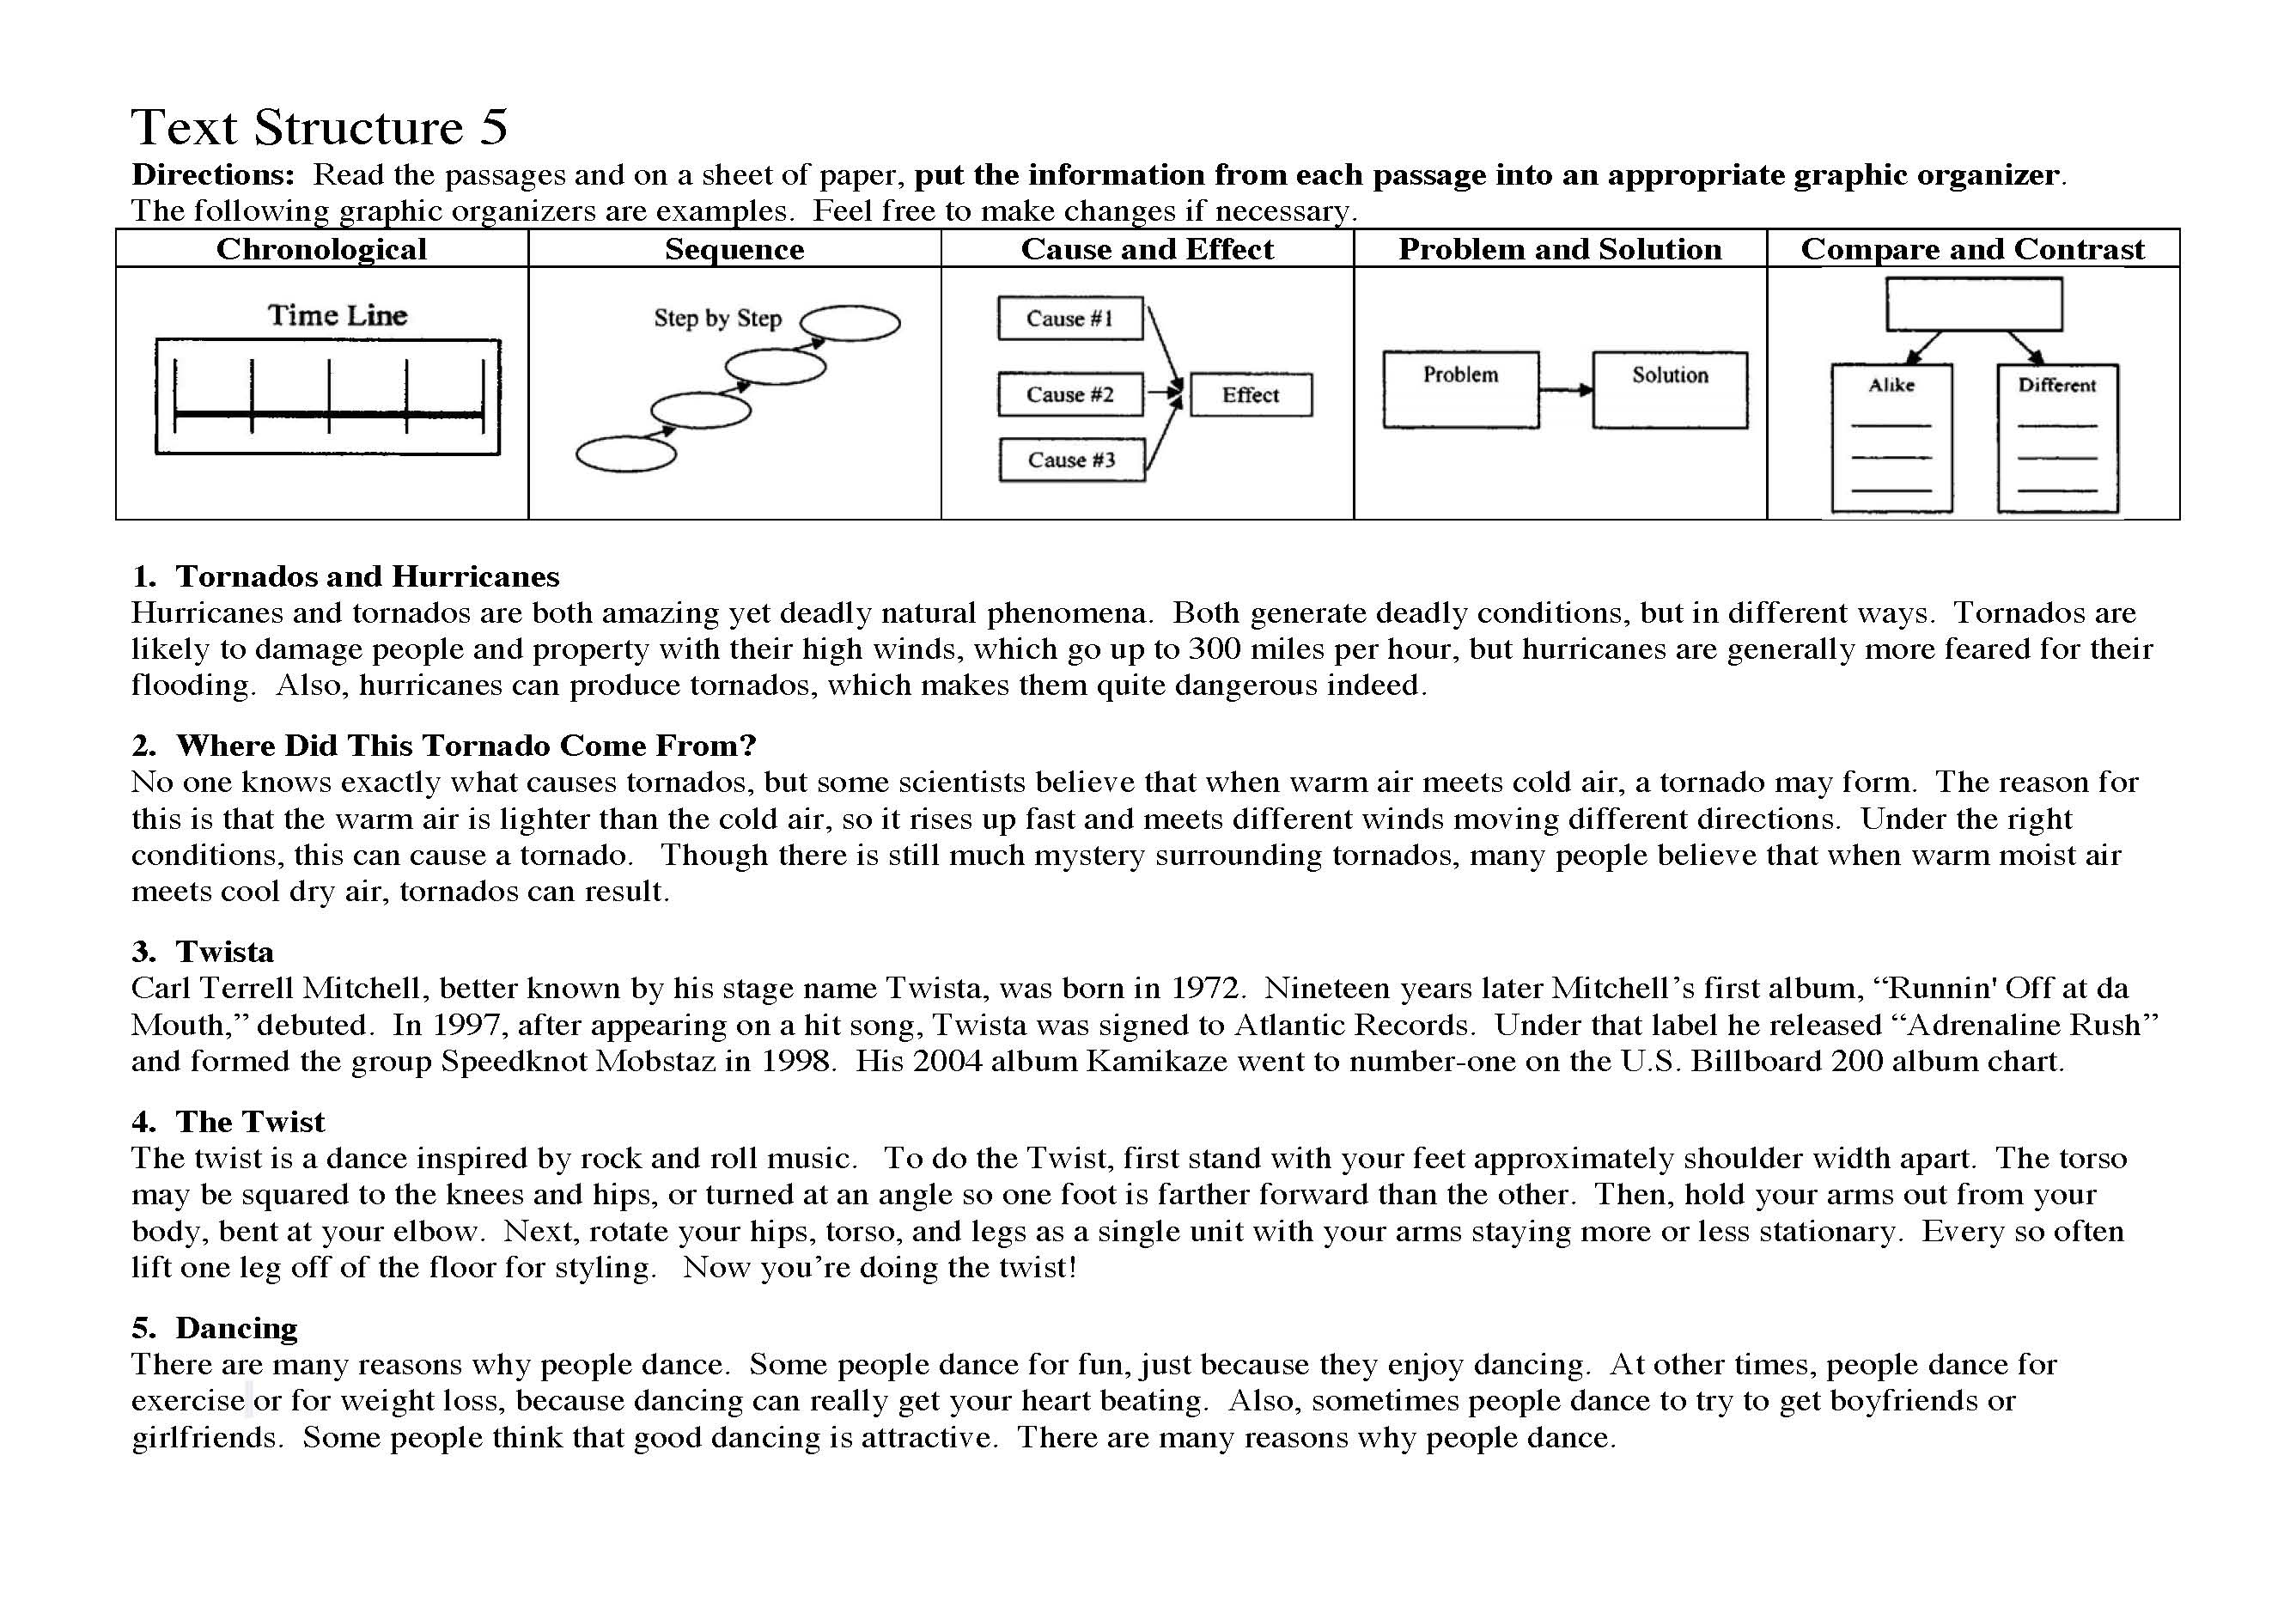 Preview A Text Worksheet : Text structure worksheet preview